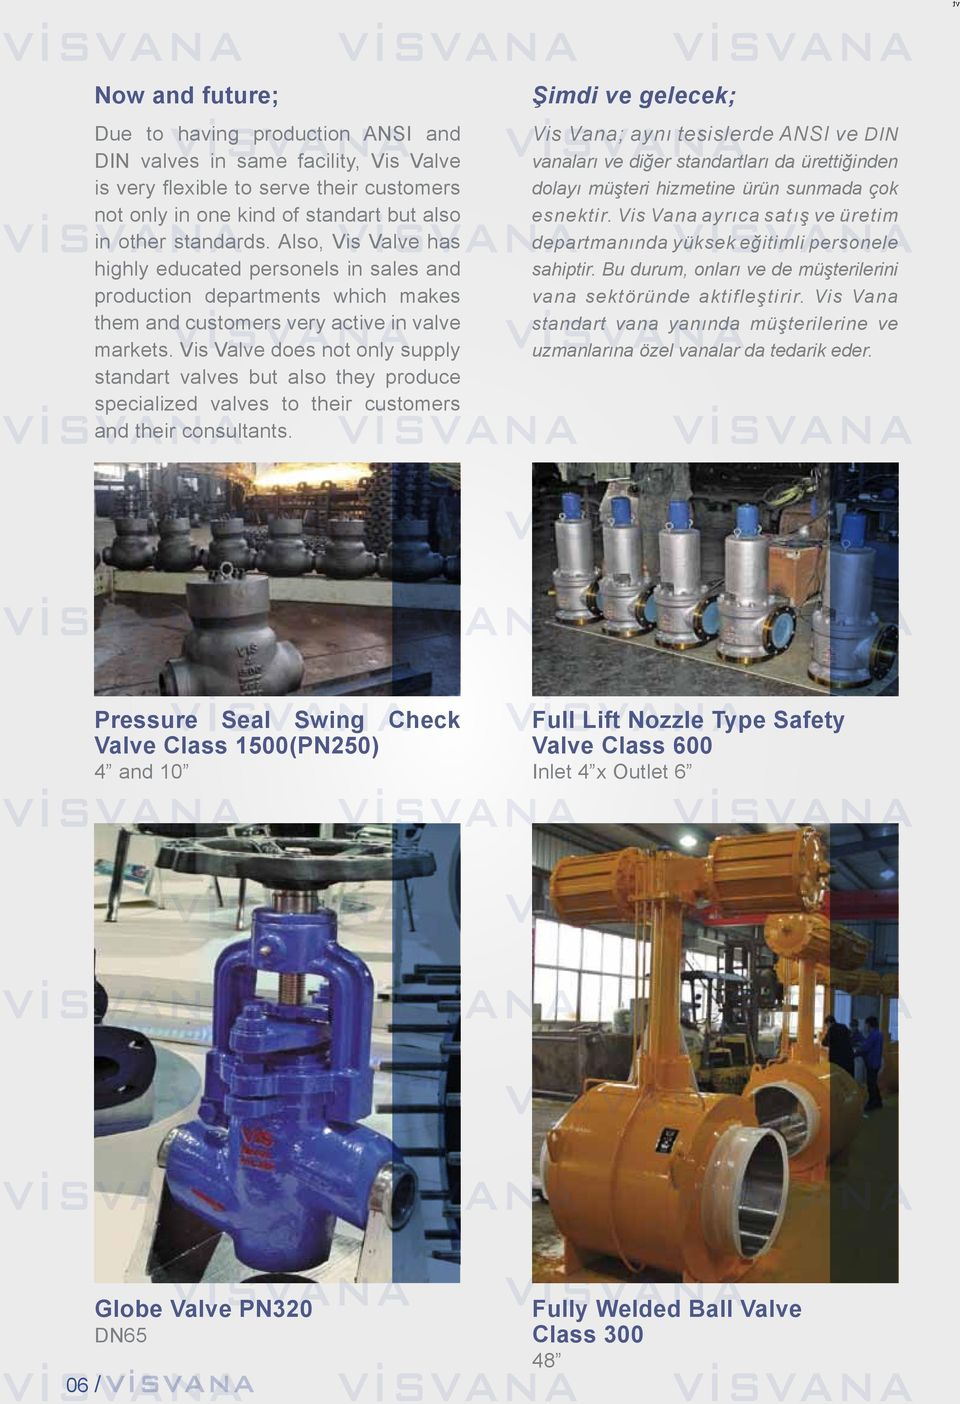 Vis Valve does not only supply standart valves but also they produce specialized valves to their customers and their consultants.